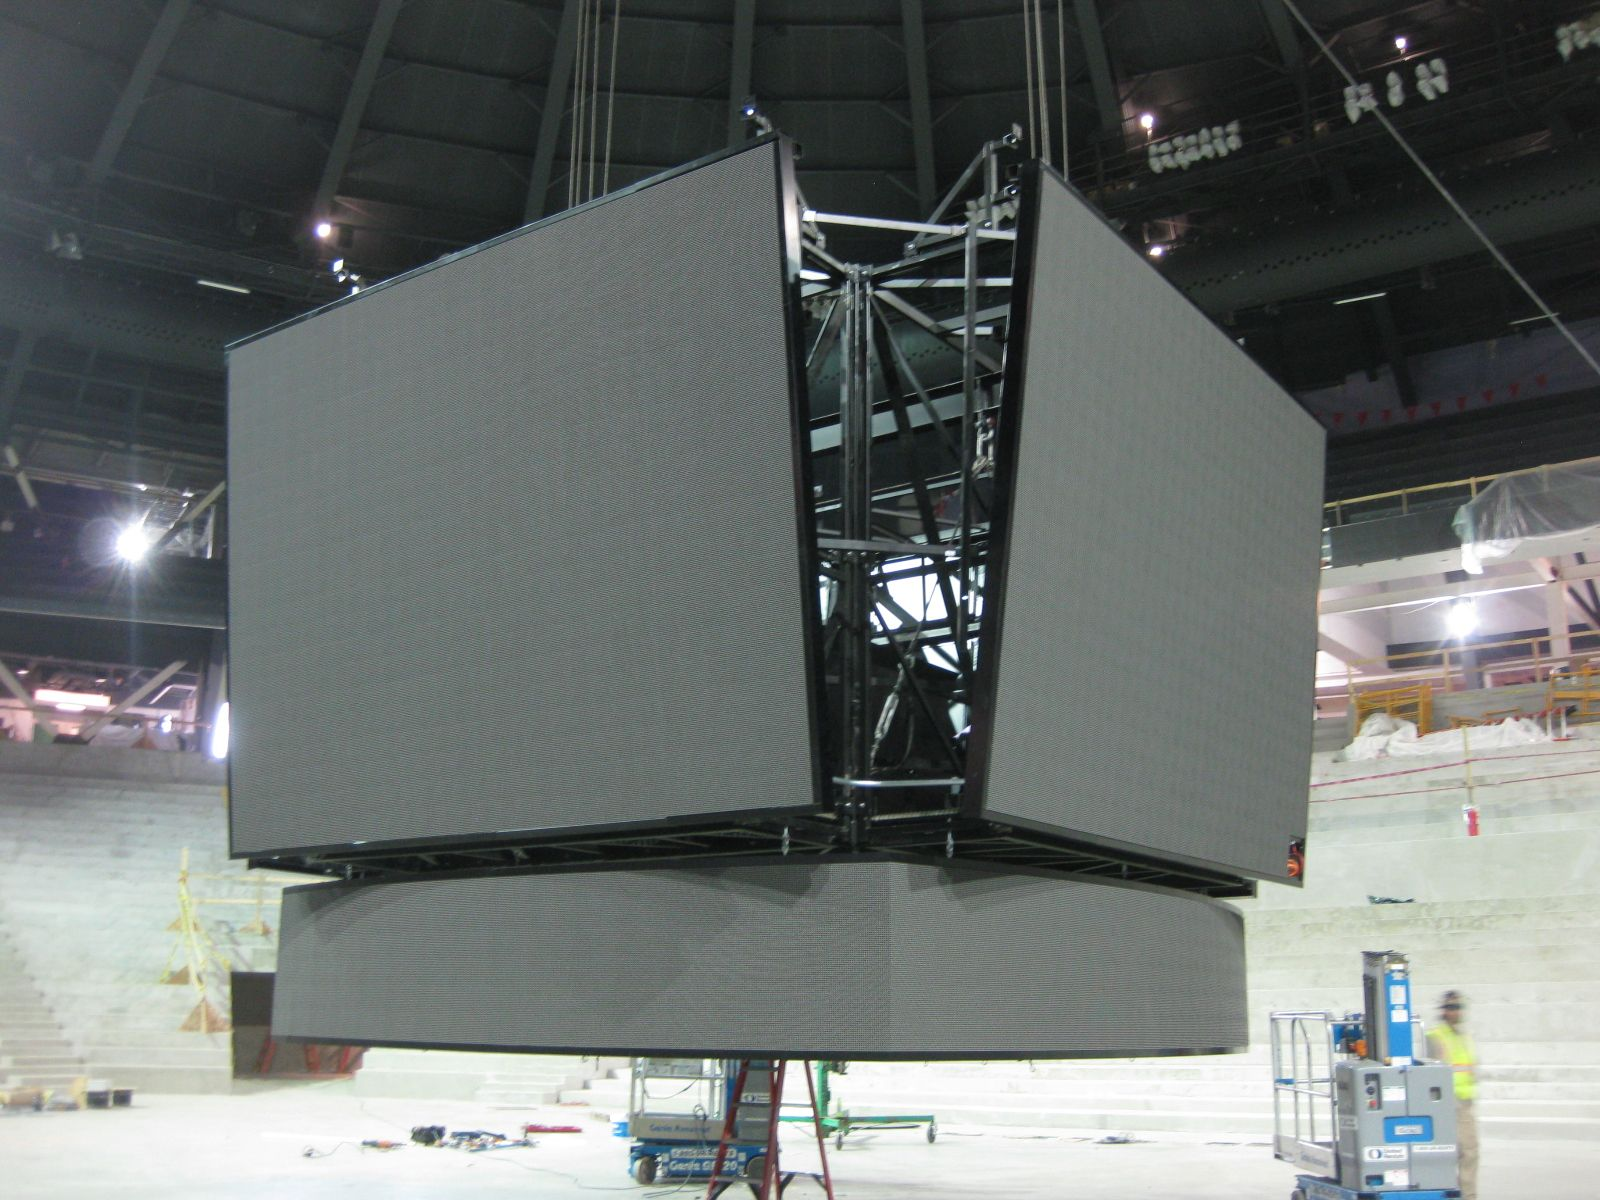 Check out the centerhung scoreboard that is going to